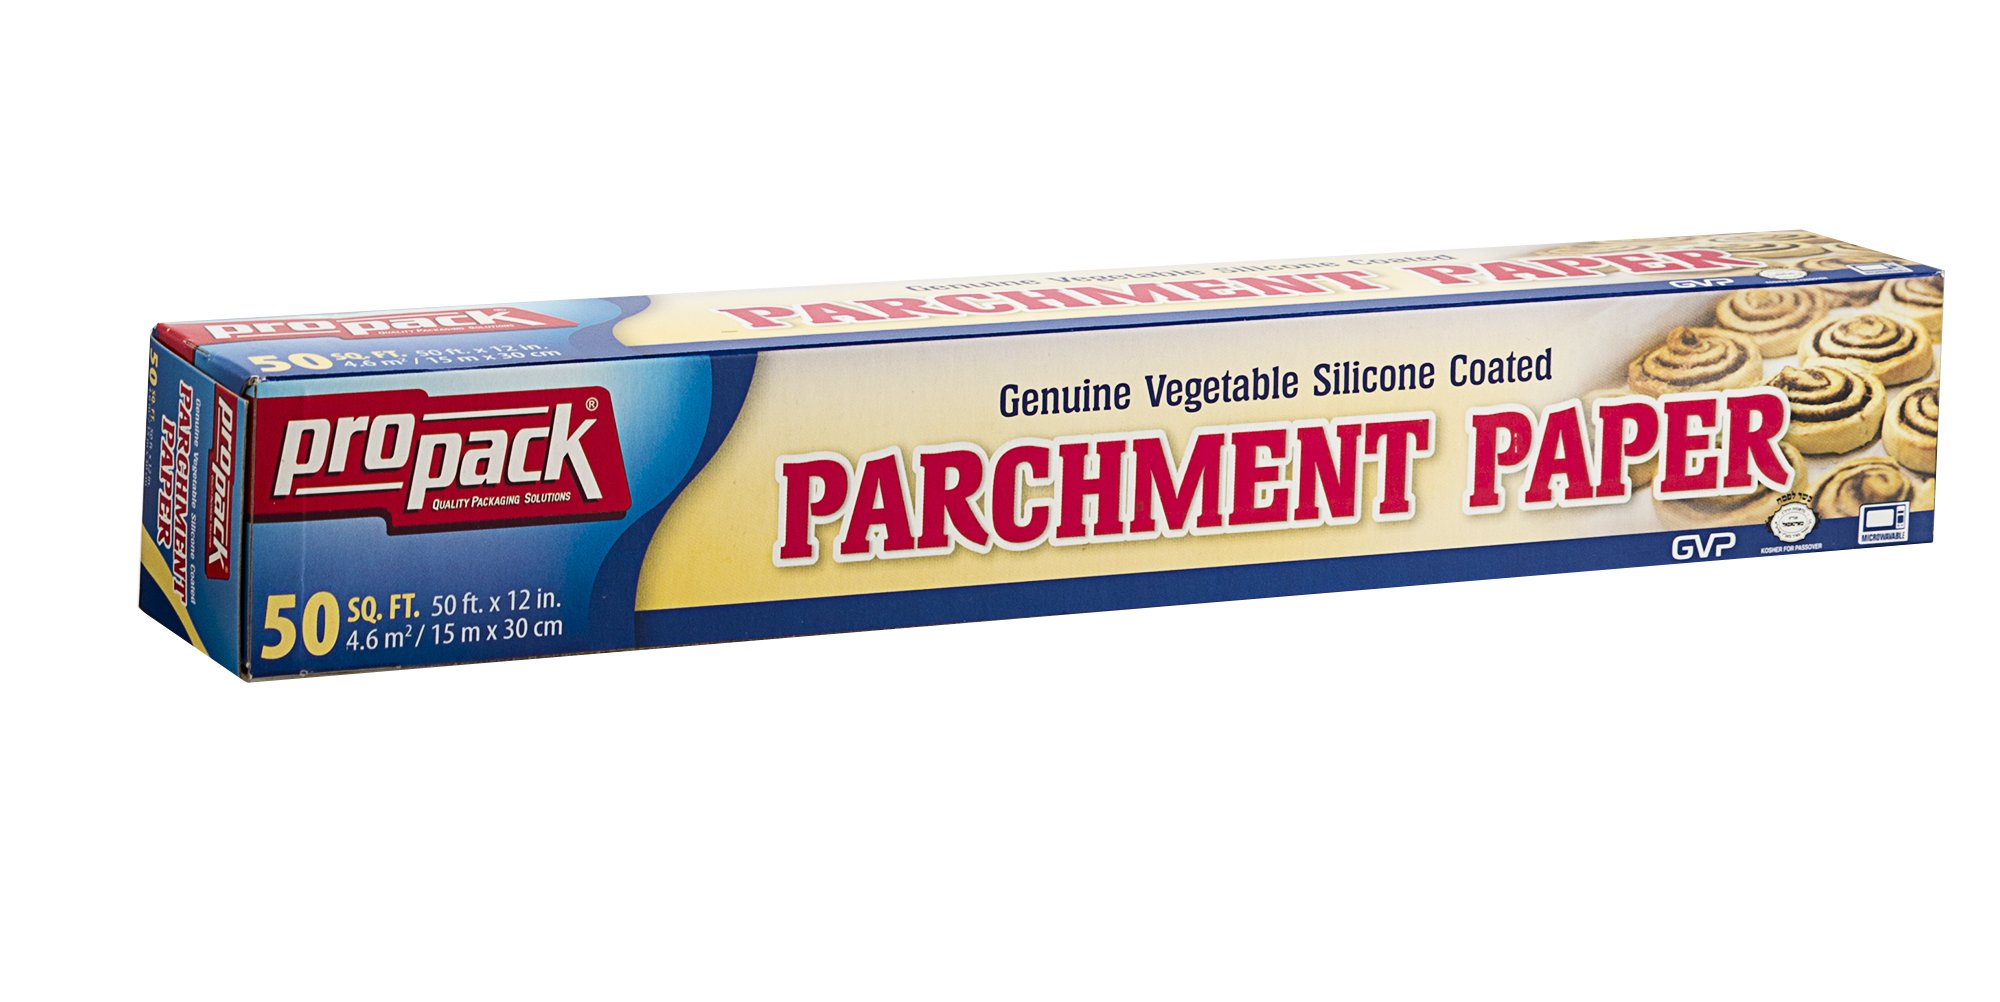 Propack Non Stick Parchment Baking Paper 12 x 50 Pack Of 2